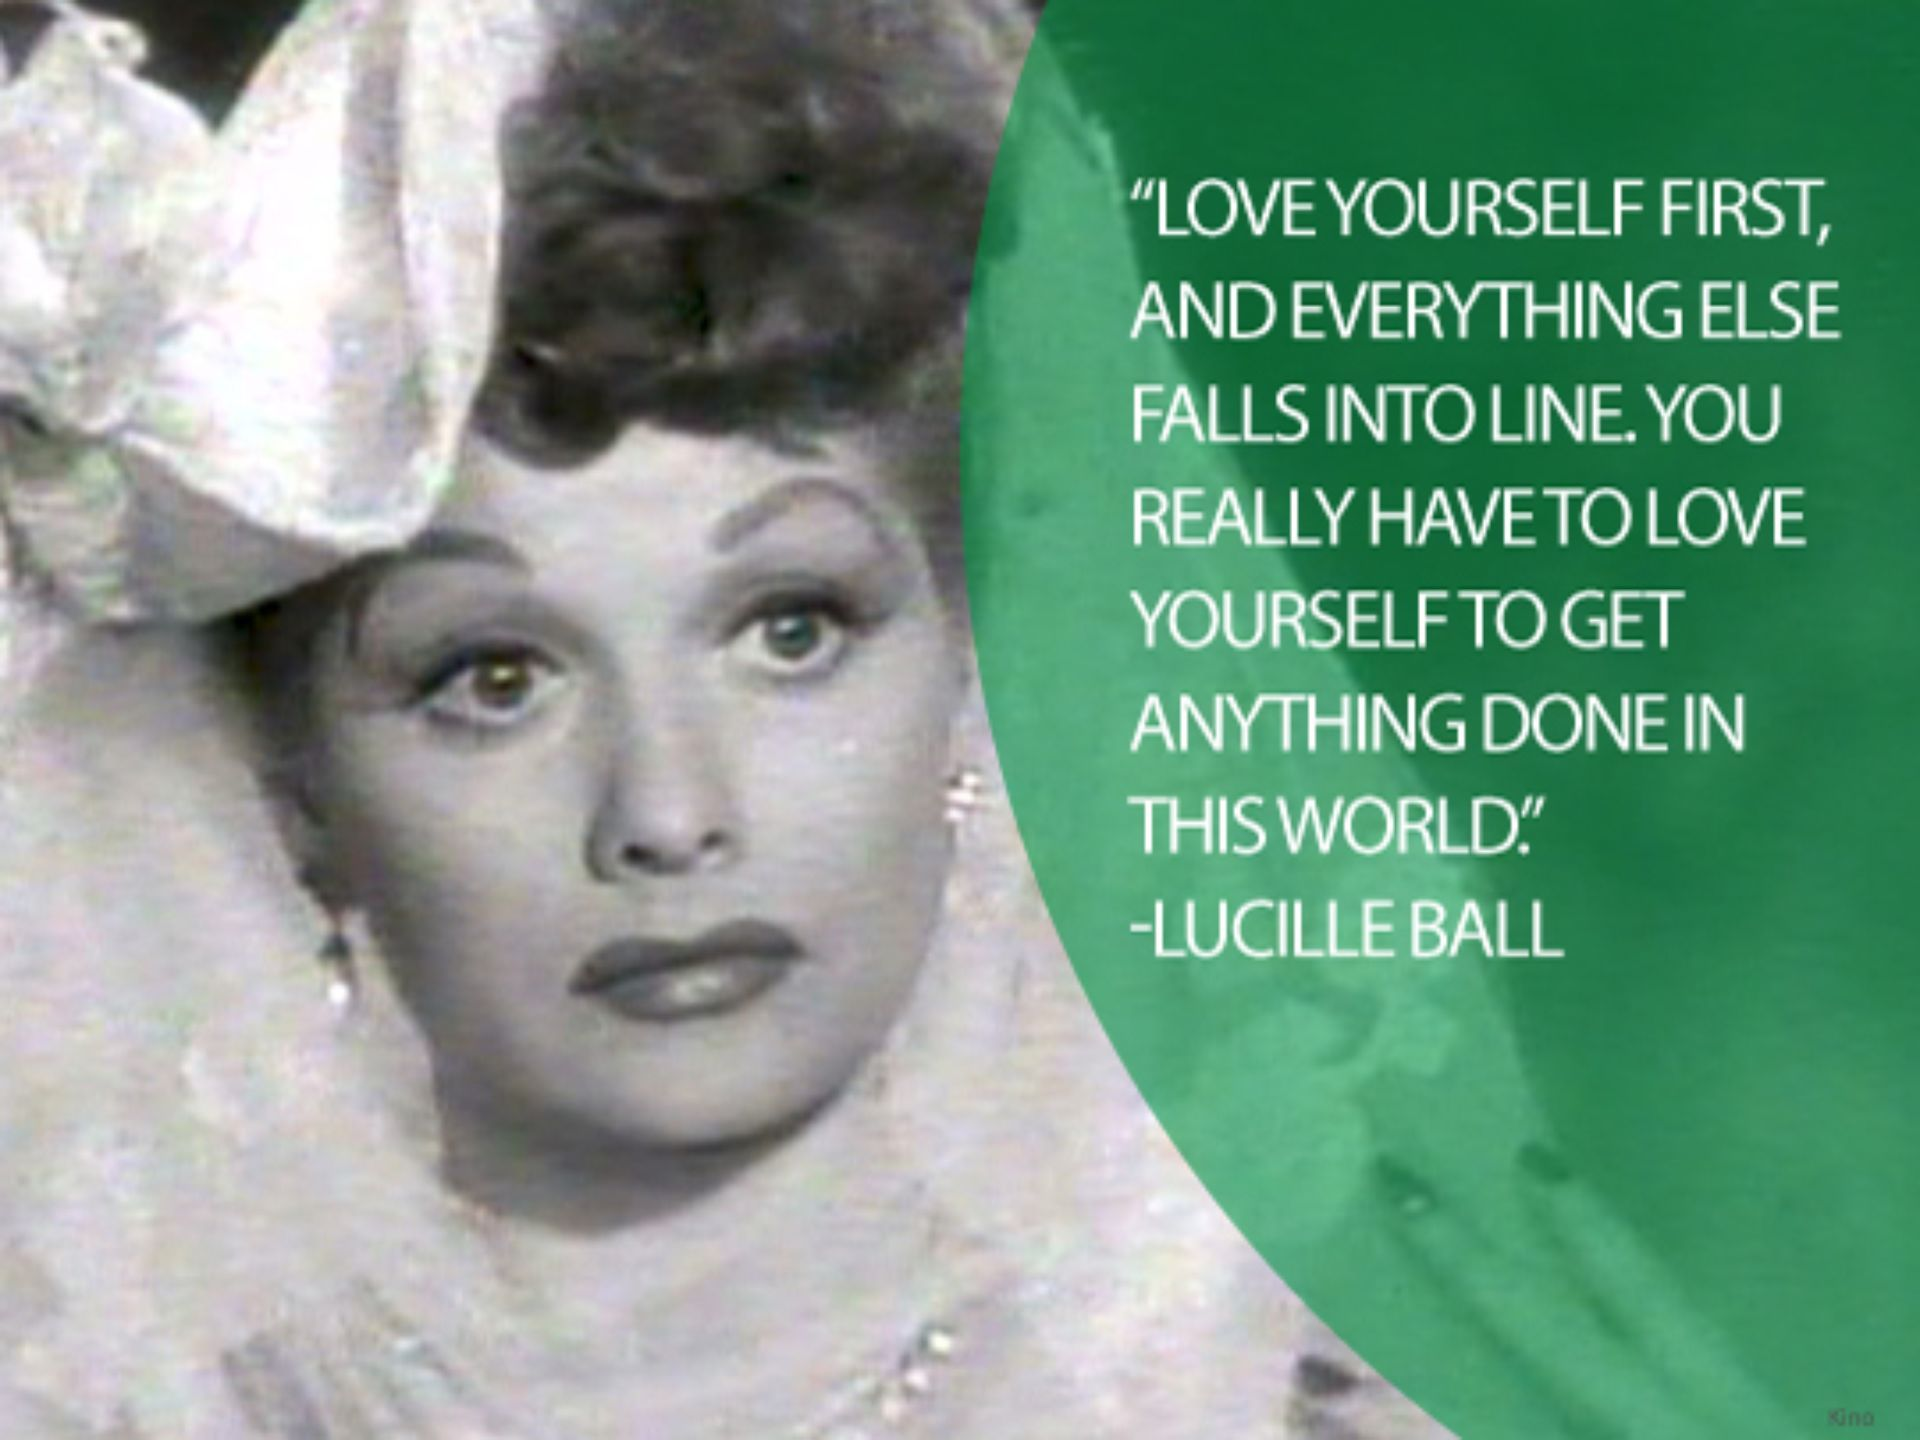 Quotes By Famous Women Lucille Ball Was Best Known For Her Role In Tv Show 'i Love Lucy